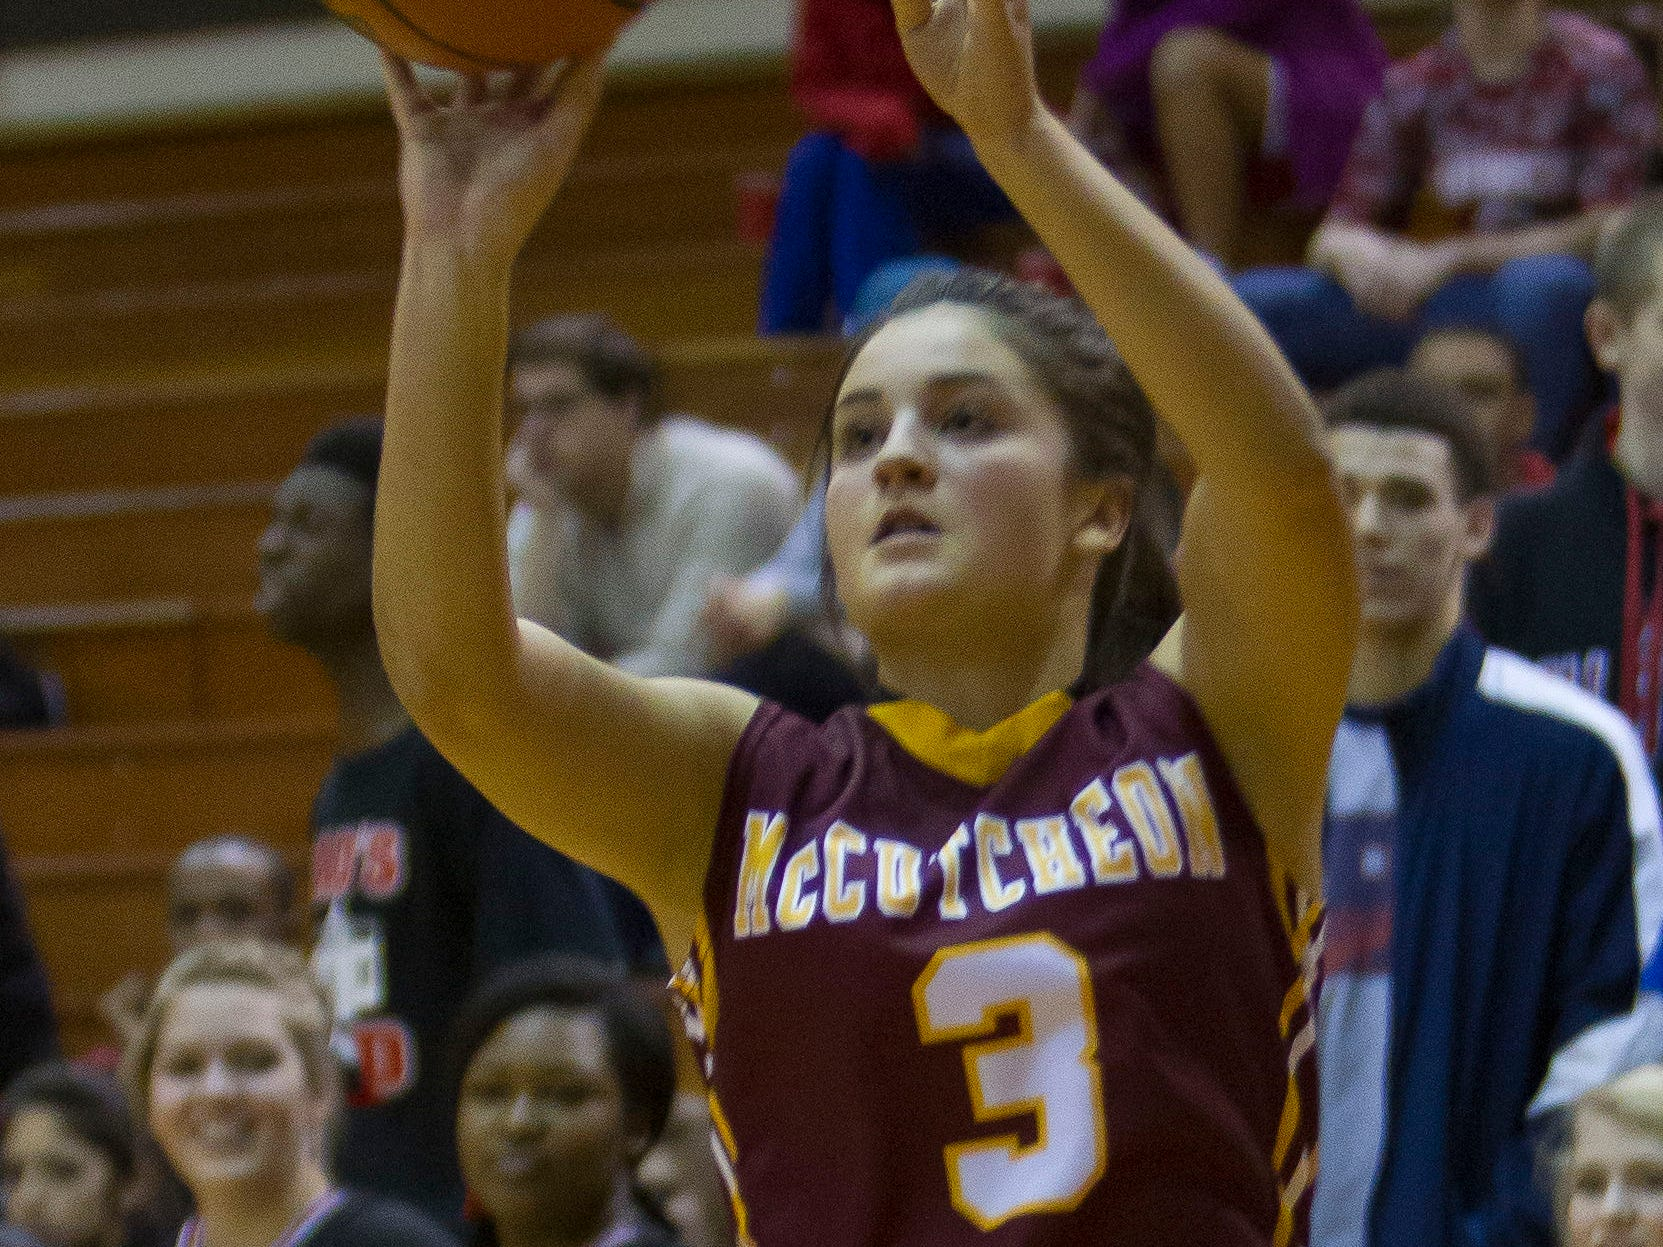 McCutcheon's Gabby gary, 3, puts up a shot during their game against Lafayette Jeff Thursday, January 16, 2014, at Jeff High in Lafayette. McCutcheon won 56-40.